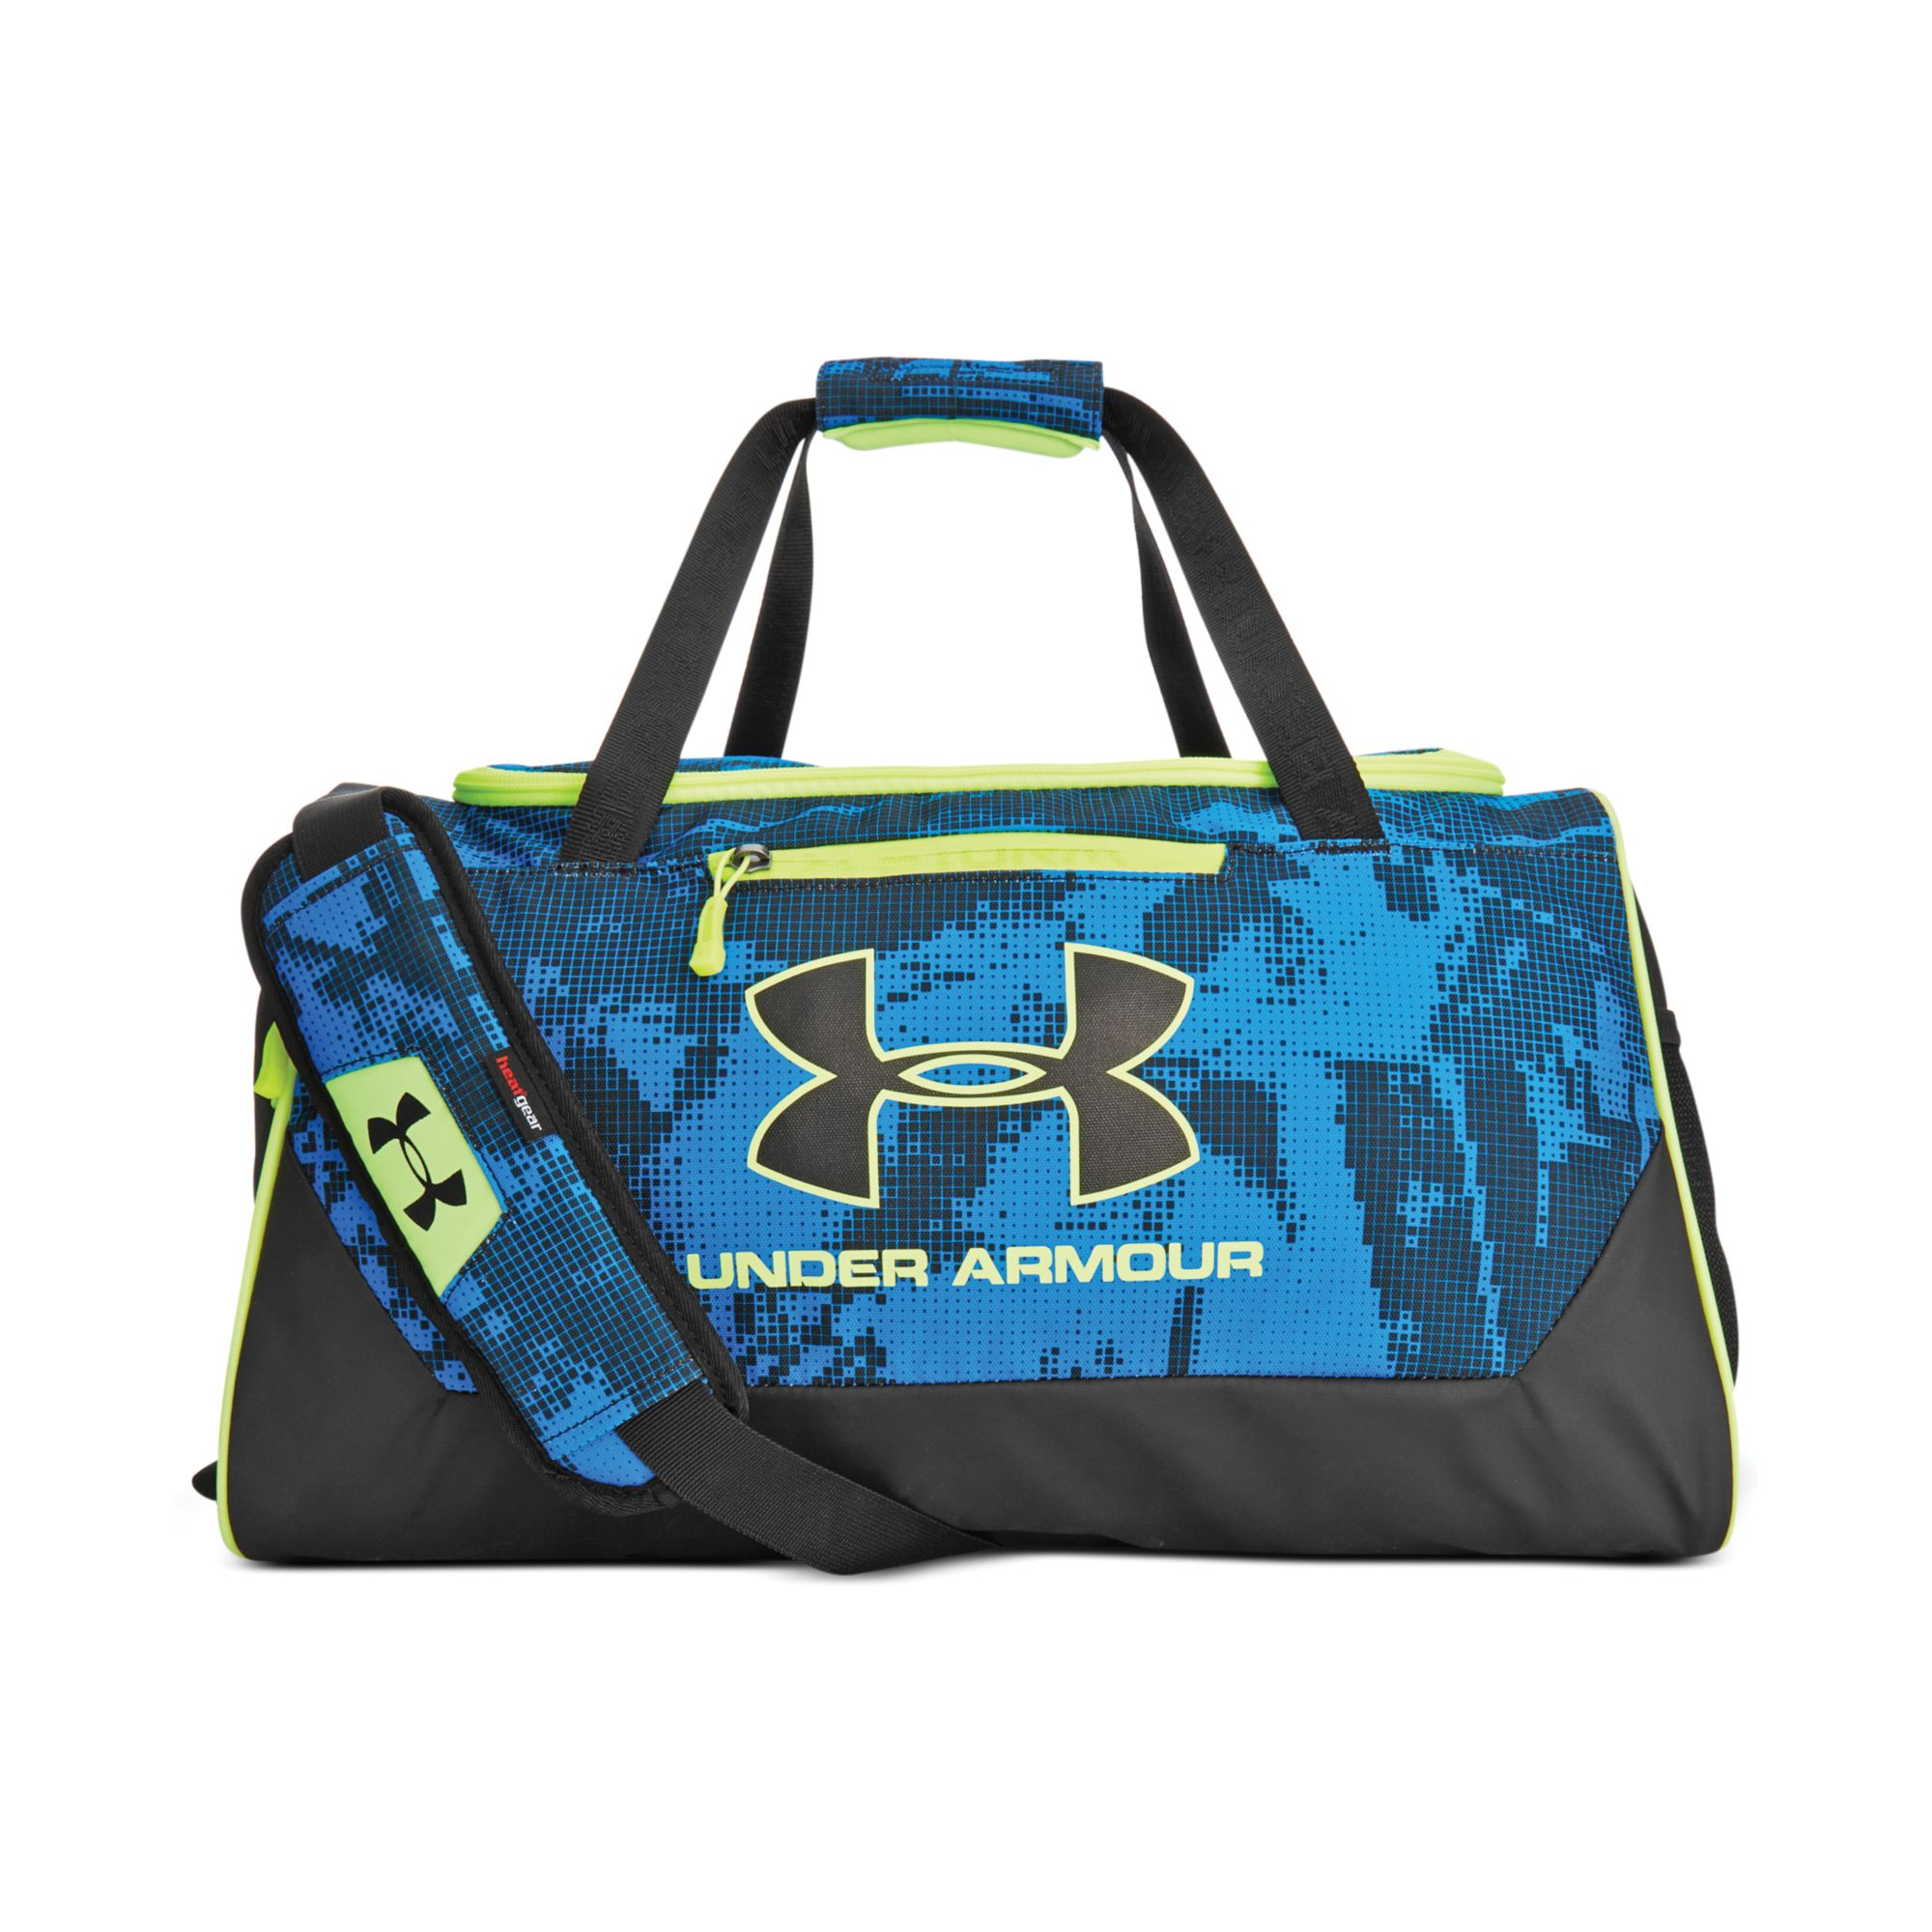 507b9f028ef0 Lyst - Under Armour Hustle Small Duffle Bag in Blue for Men